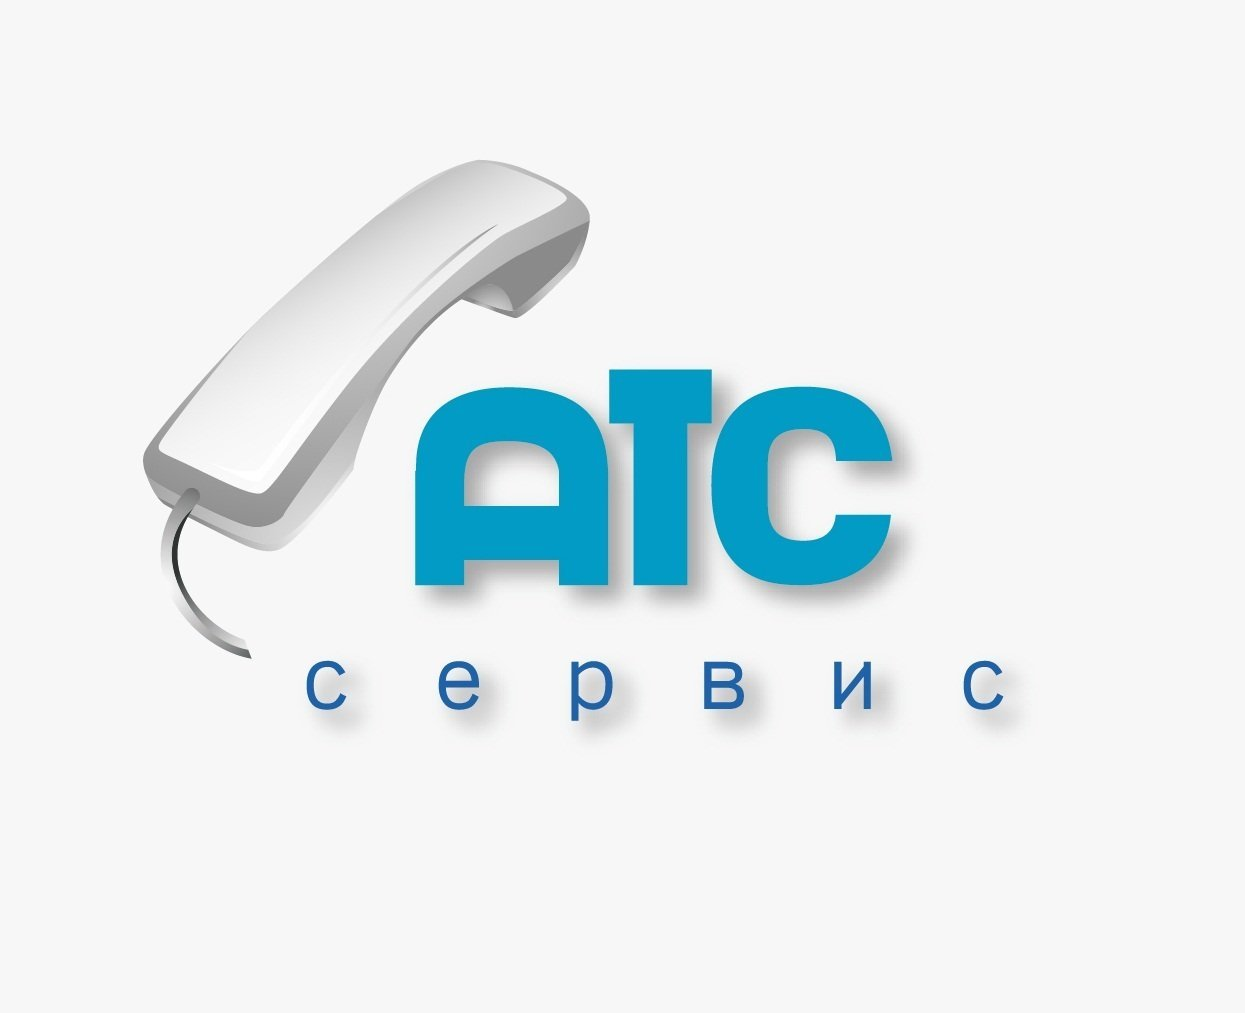 Установка CTI приложения (Communication Assistant) - 1 рабочее место